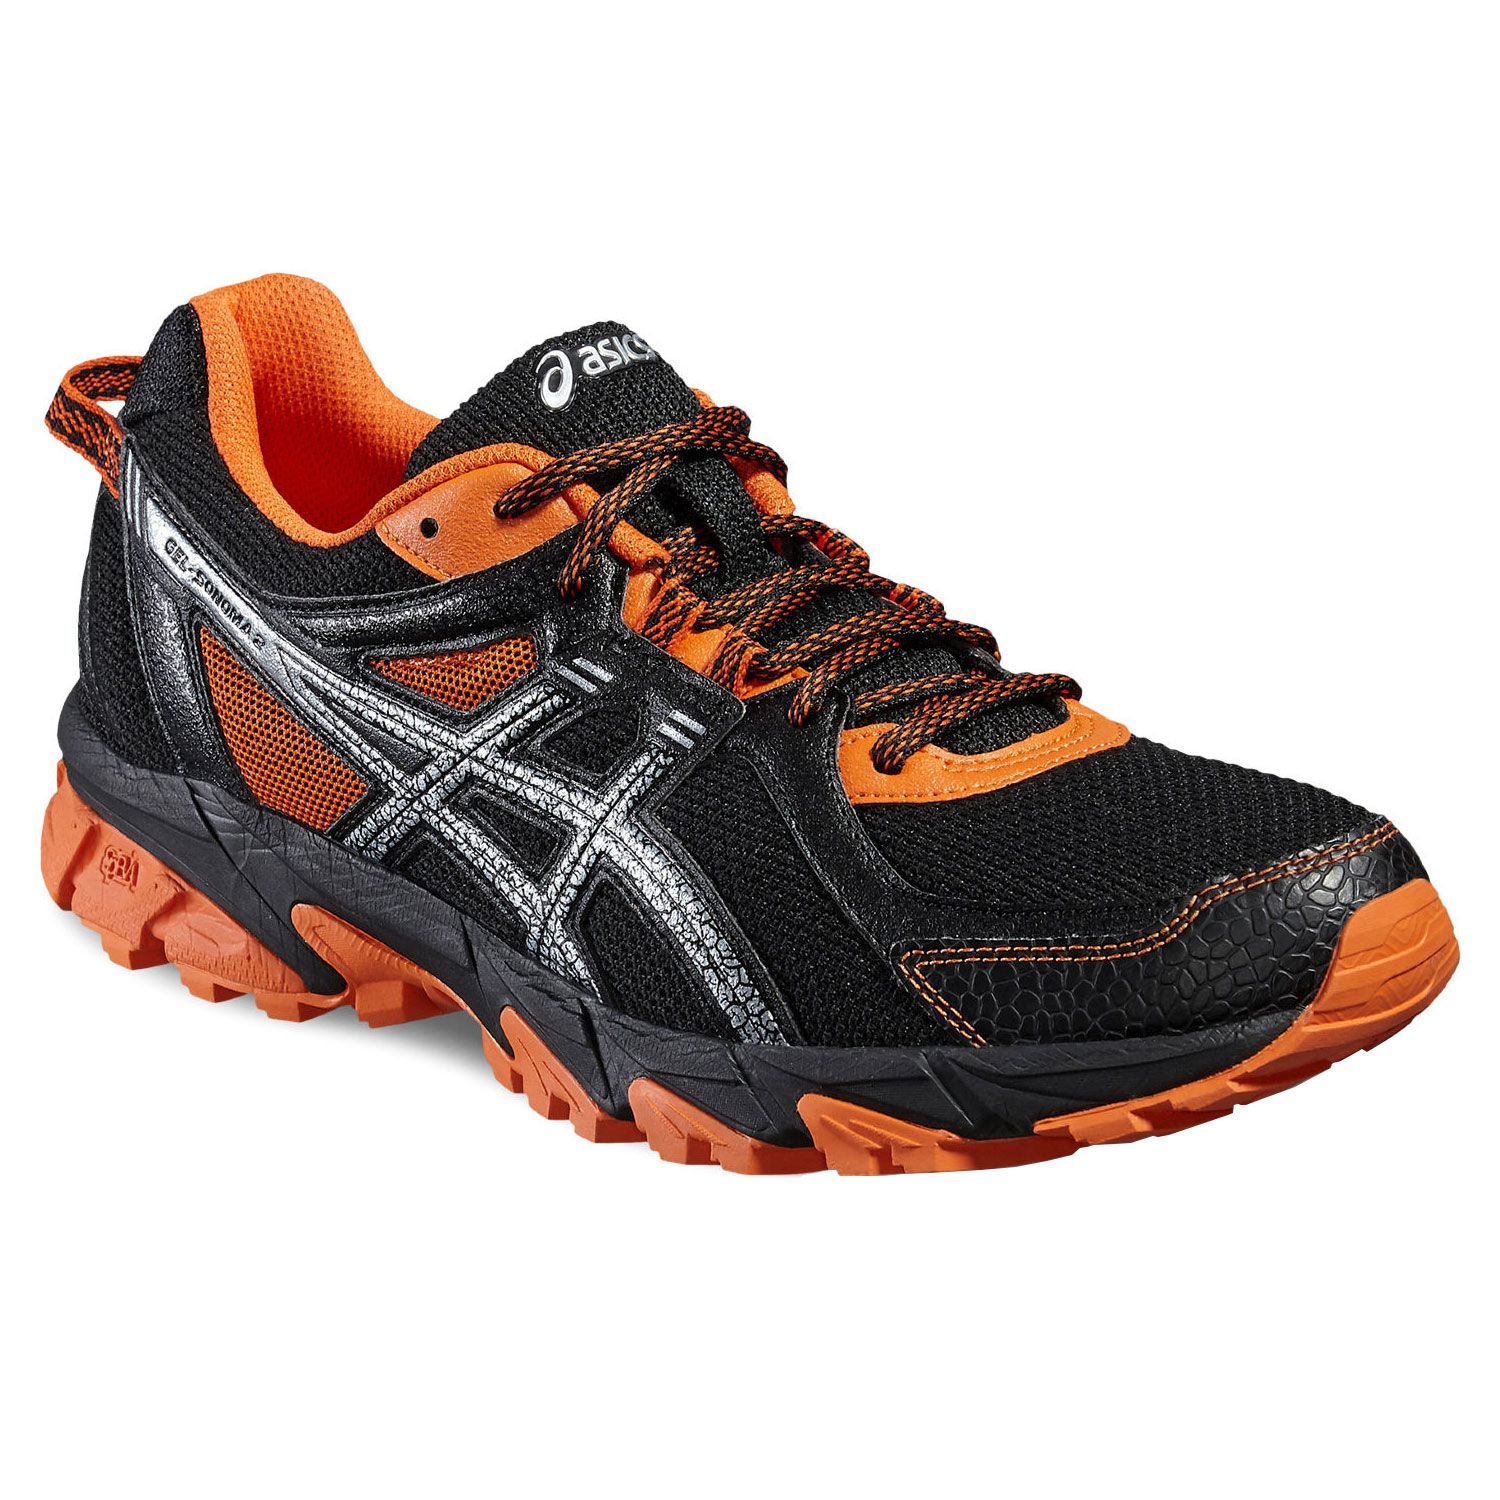 Asics Gel-Sonoma 2 Mens Running Shoes - Sweatband.com